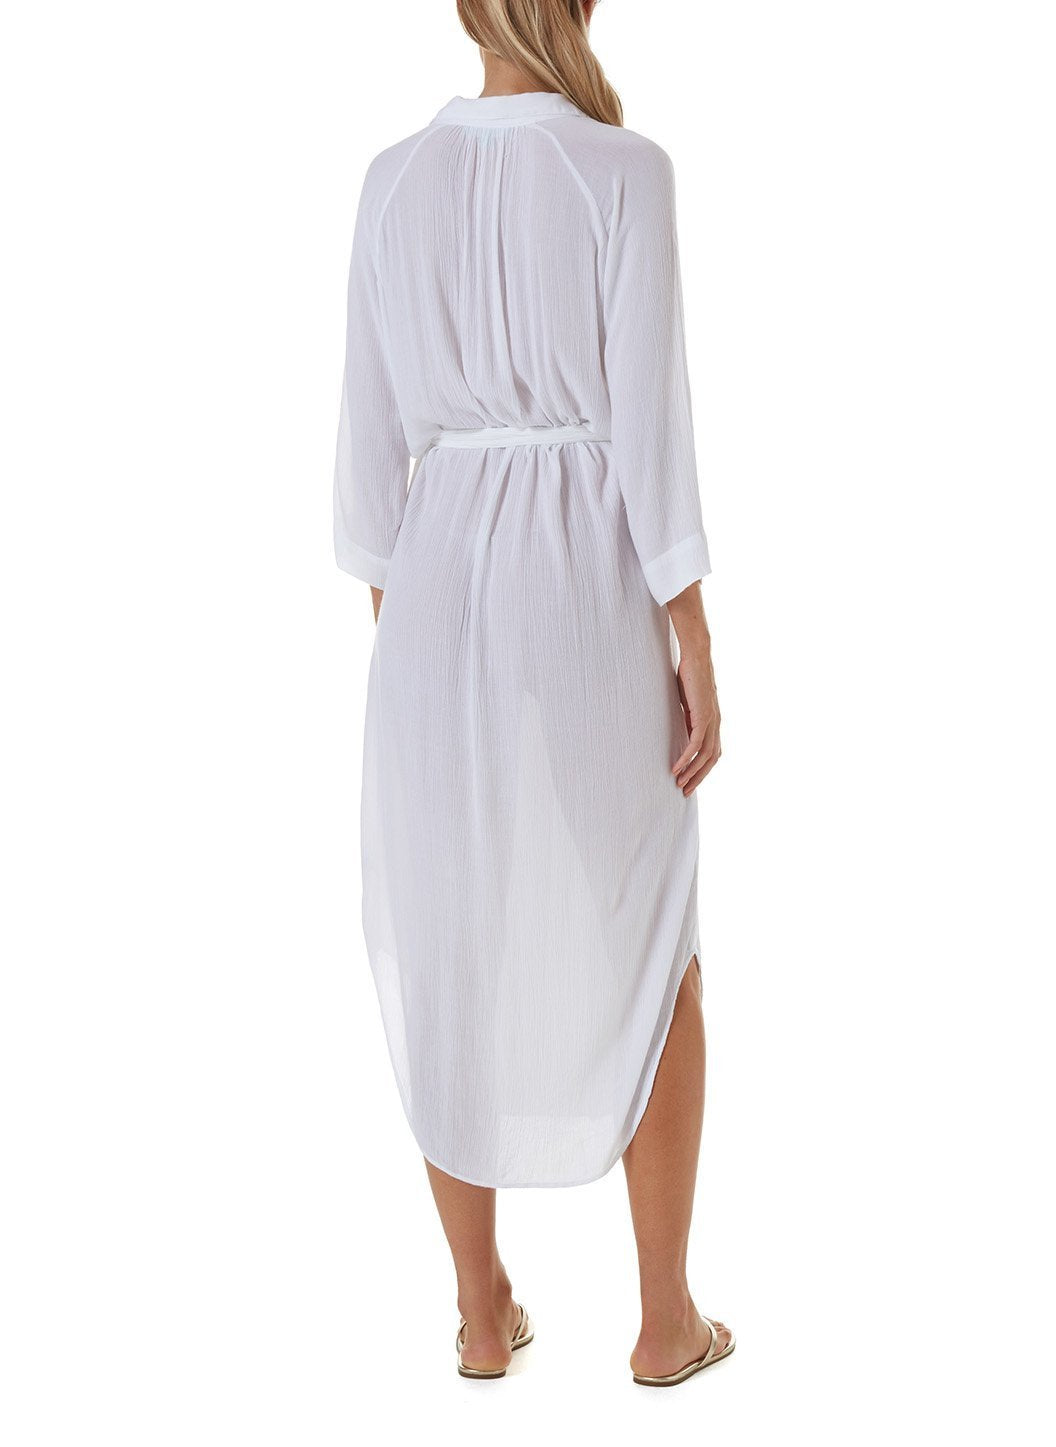 alesha white long shirt dress